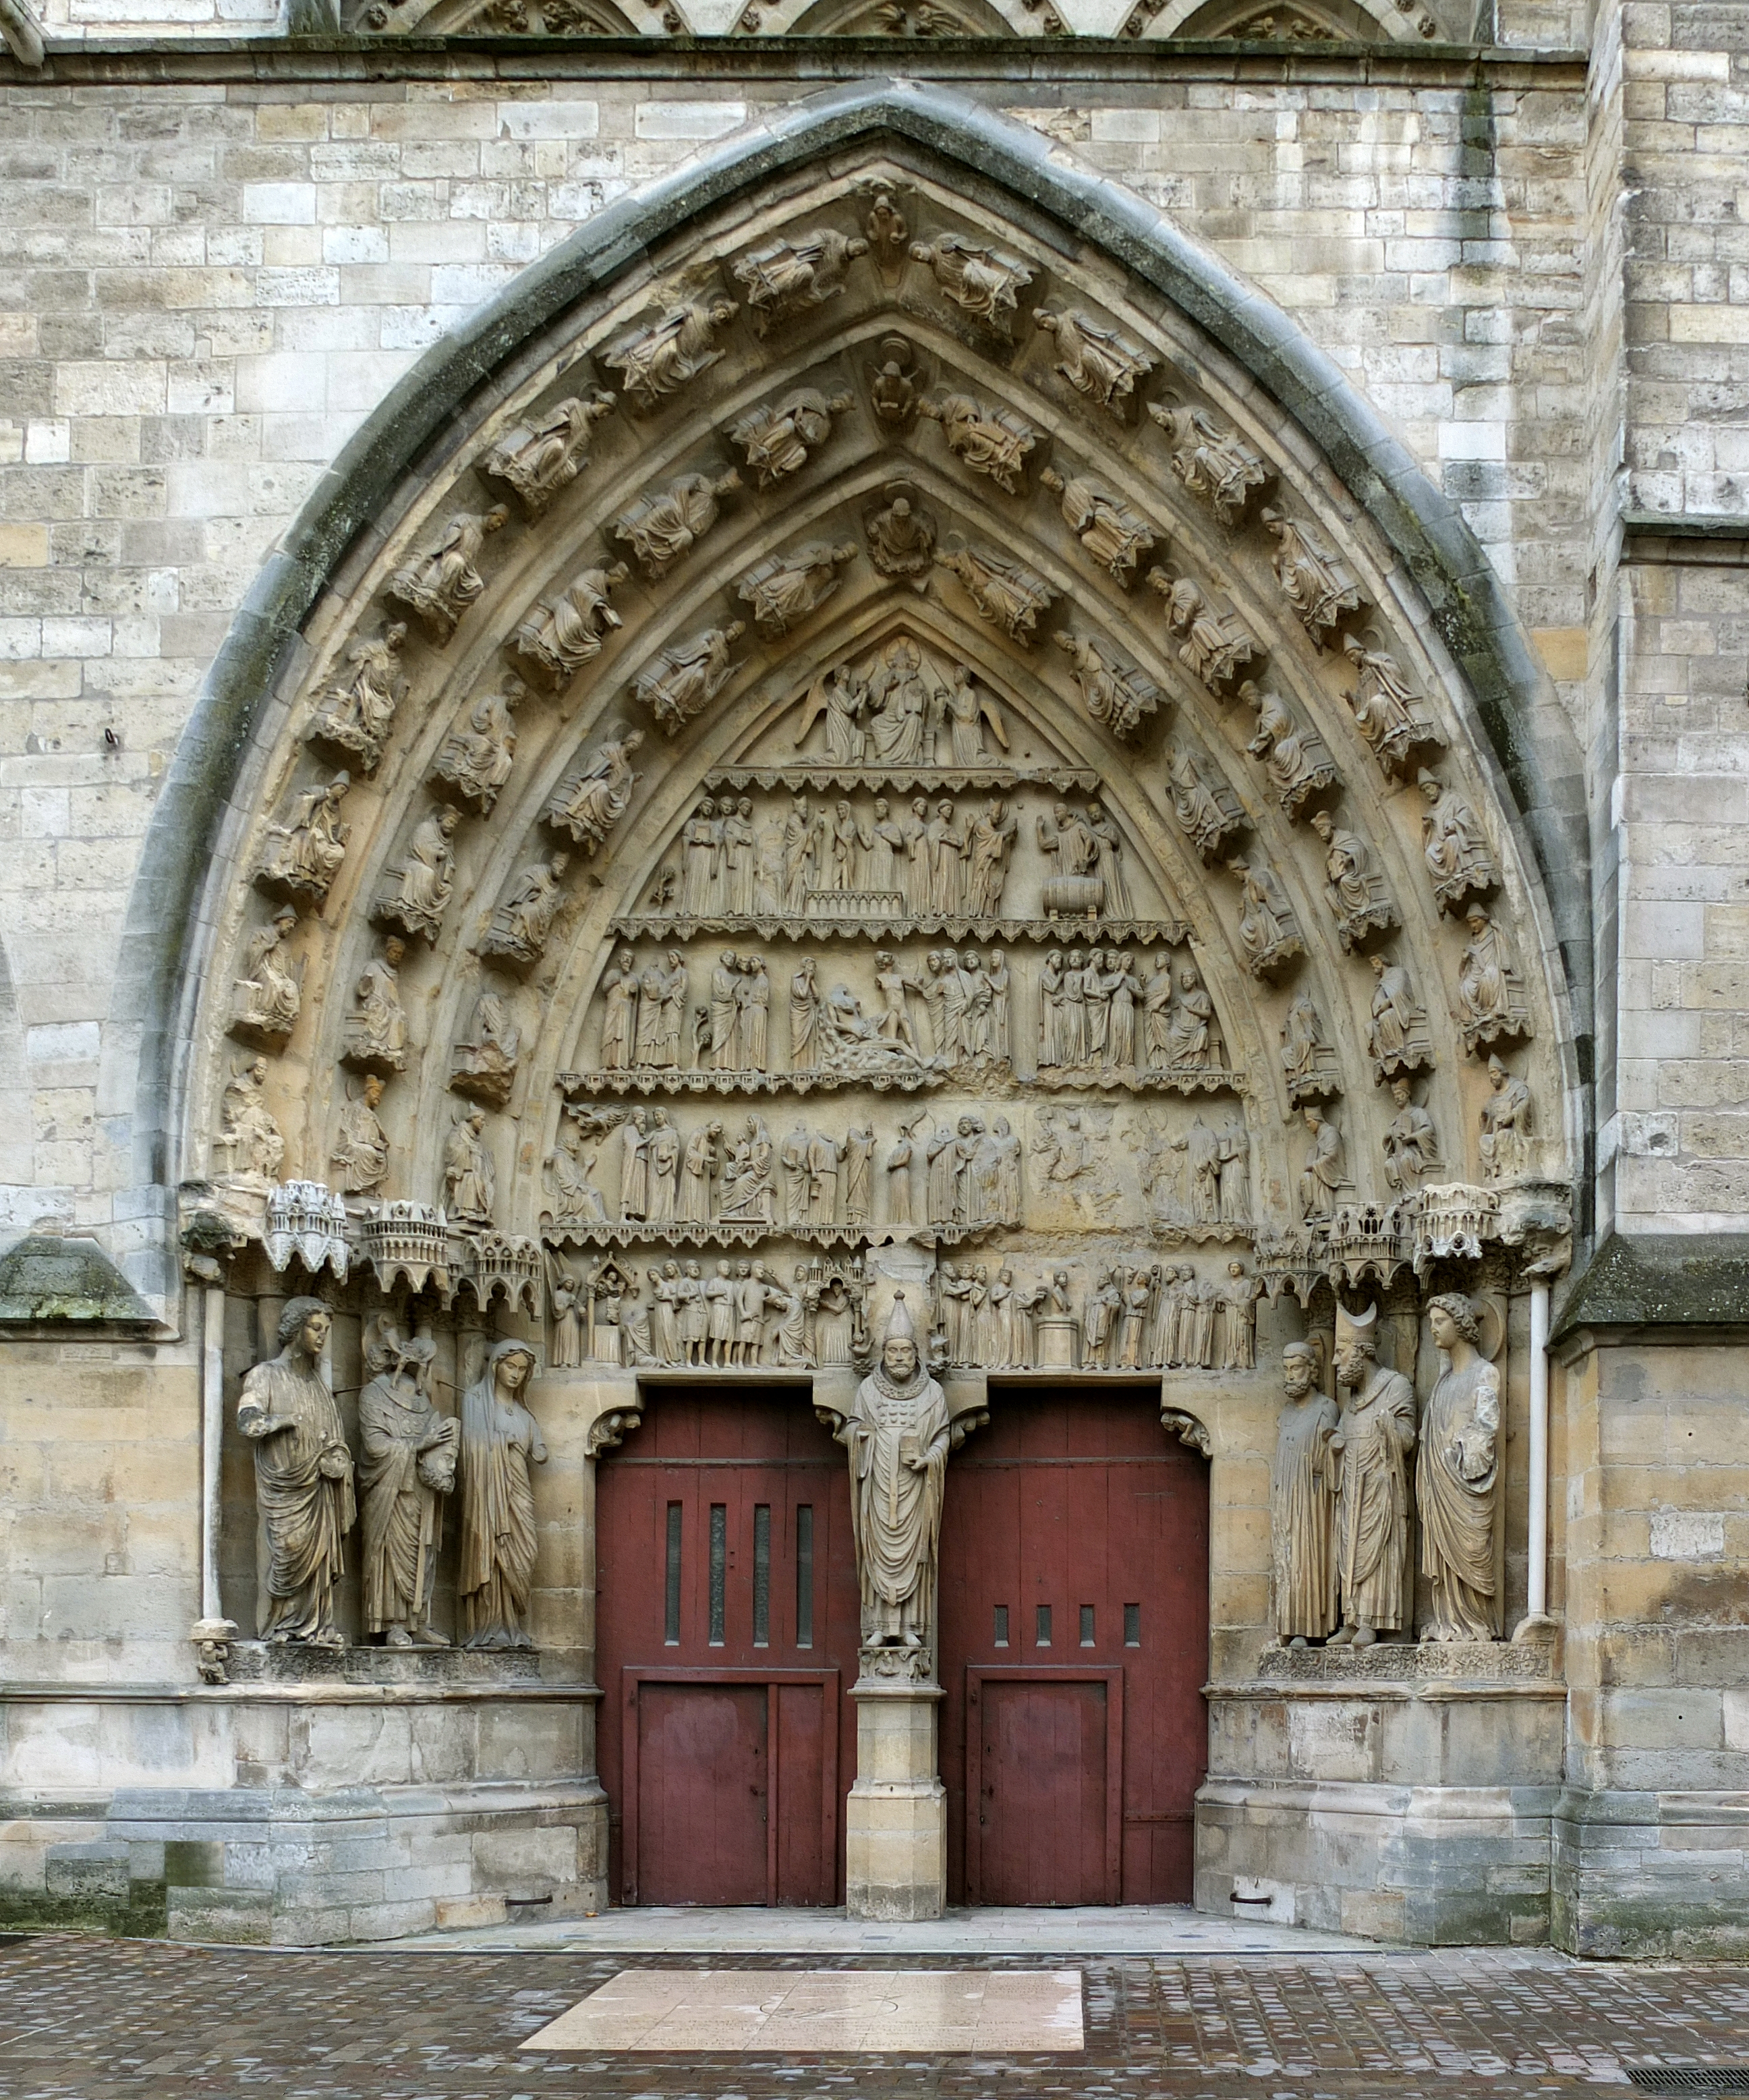 File:Reims cathedral north portal.jpg - Wikimedia Commons